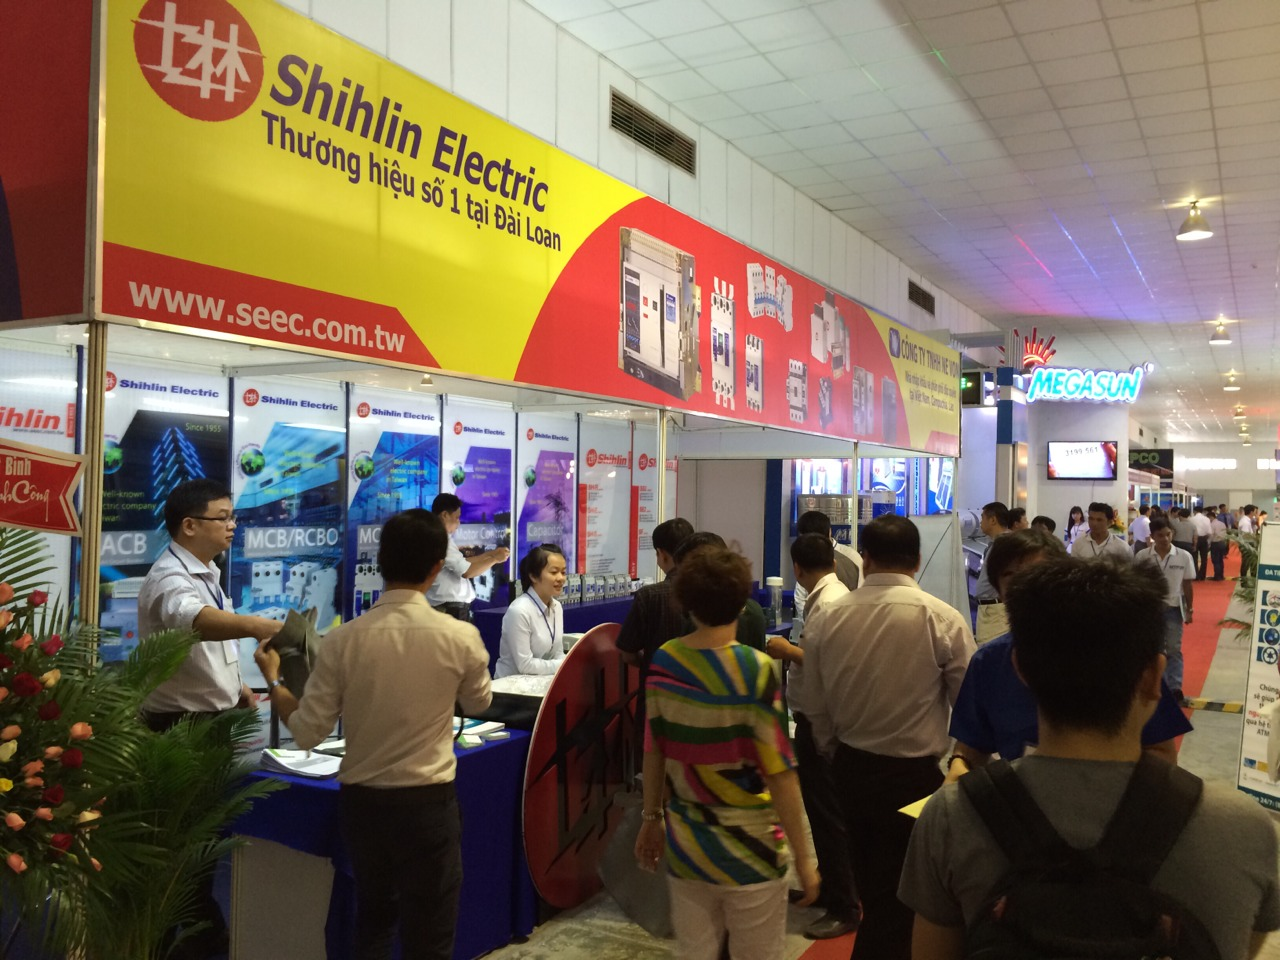 Shihlin Electric stand at The 7th International Exhibition on Electrical Technology & Equipment- Vietnam ETE 2014